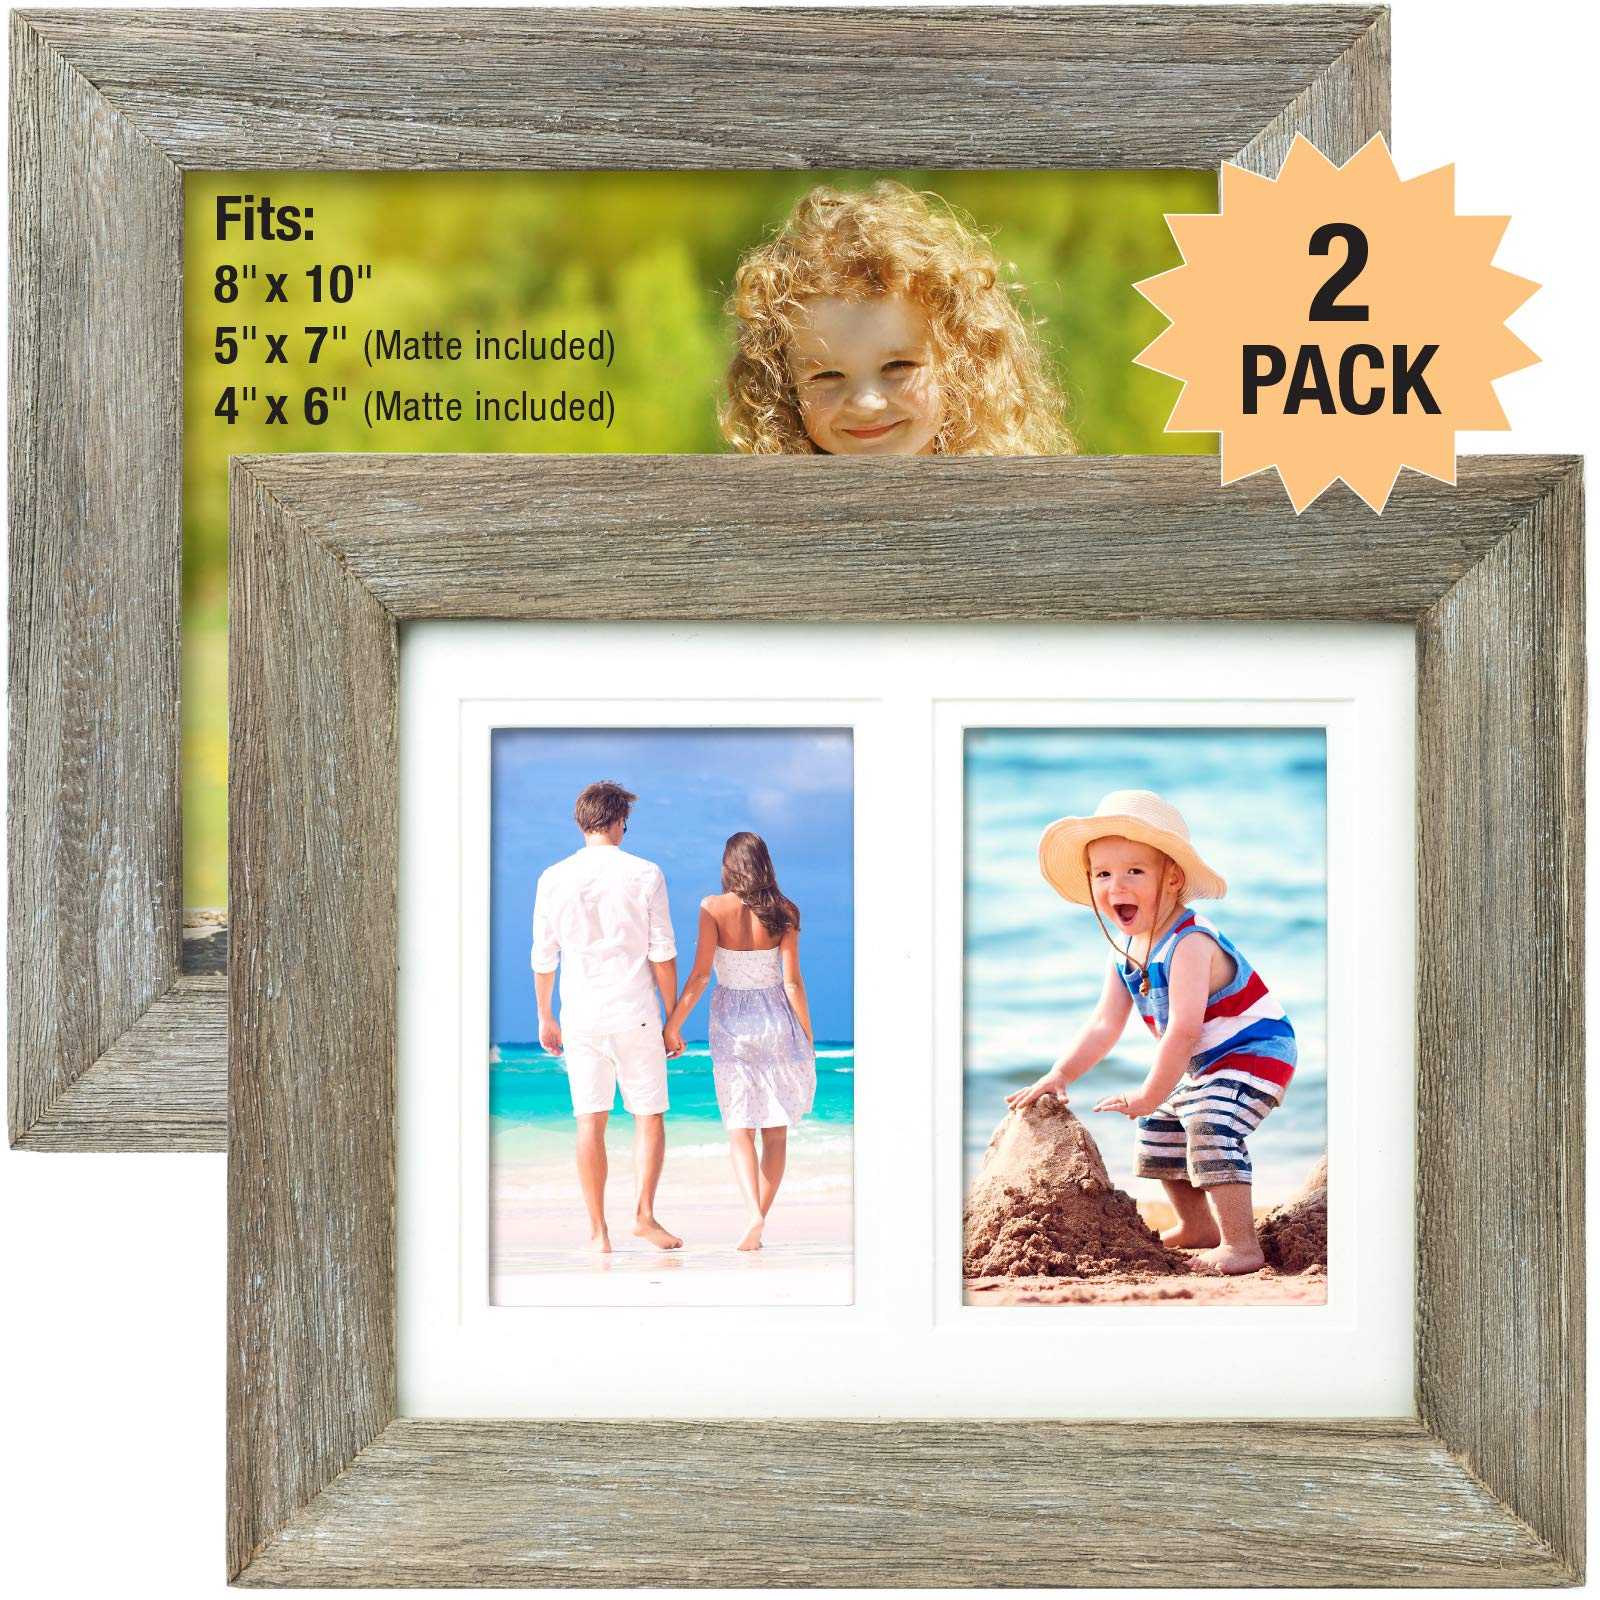 Rustic Barnwood 8x10 Picture Frame Set. Photo Frames Holder for Wall Desktop or Tabletop Display. Thick Weathered Gray Wood Home Decor. Fits 8x10 or 5x7 or 4x6 with included Matte (Pack of 2) by Excello Global Products